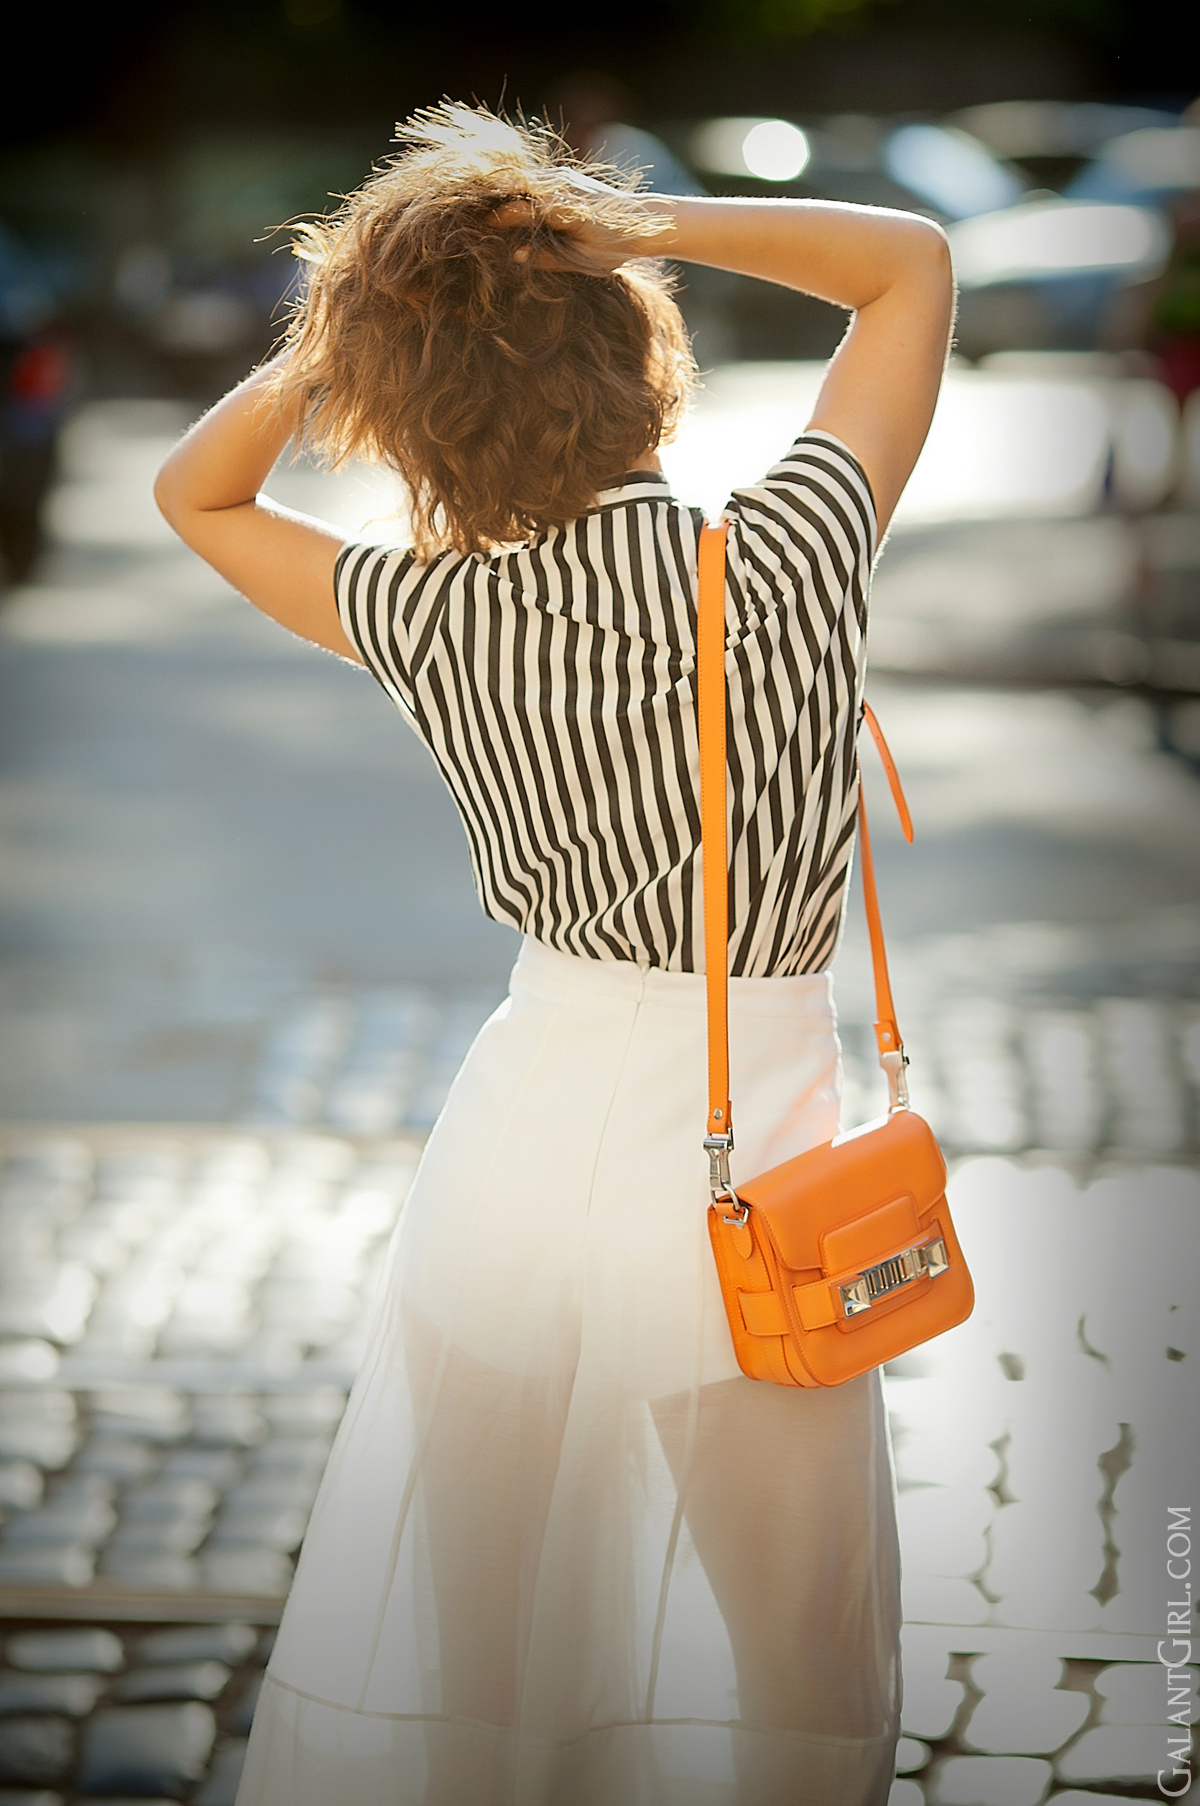 chic-style-outfit-ideas-galant-girl